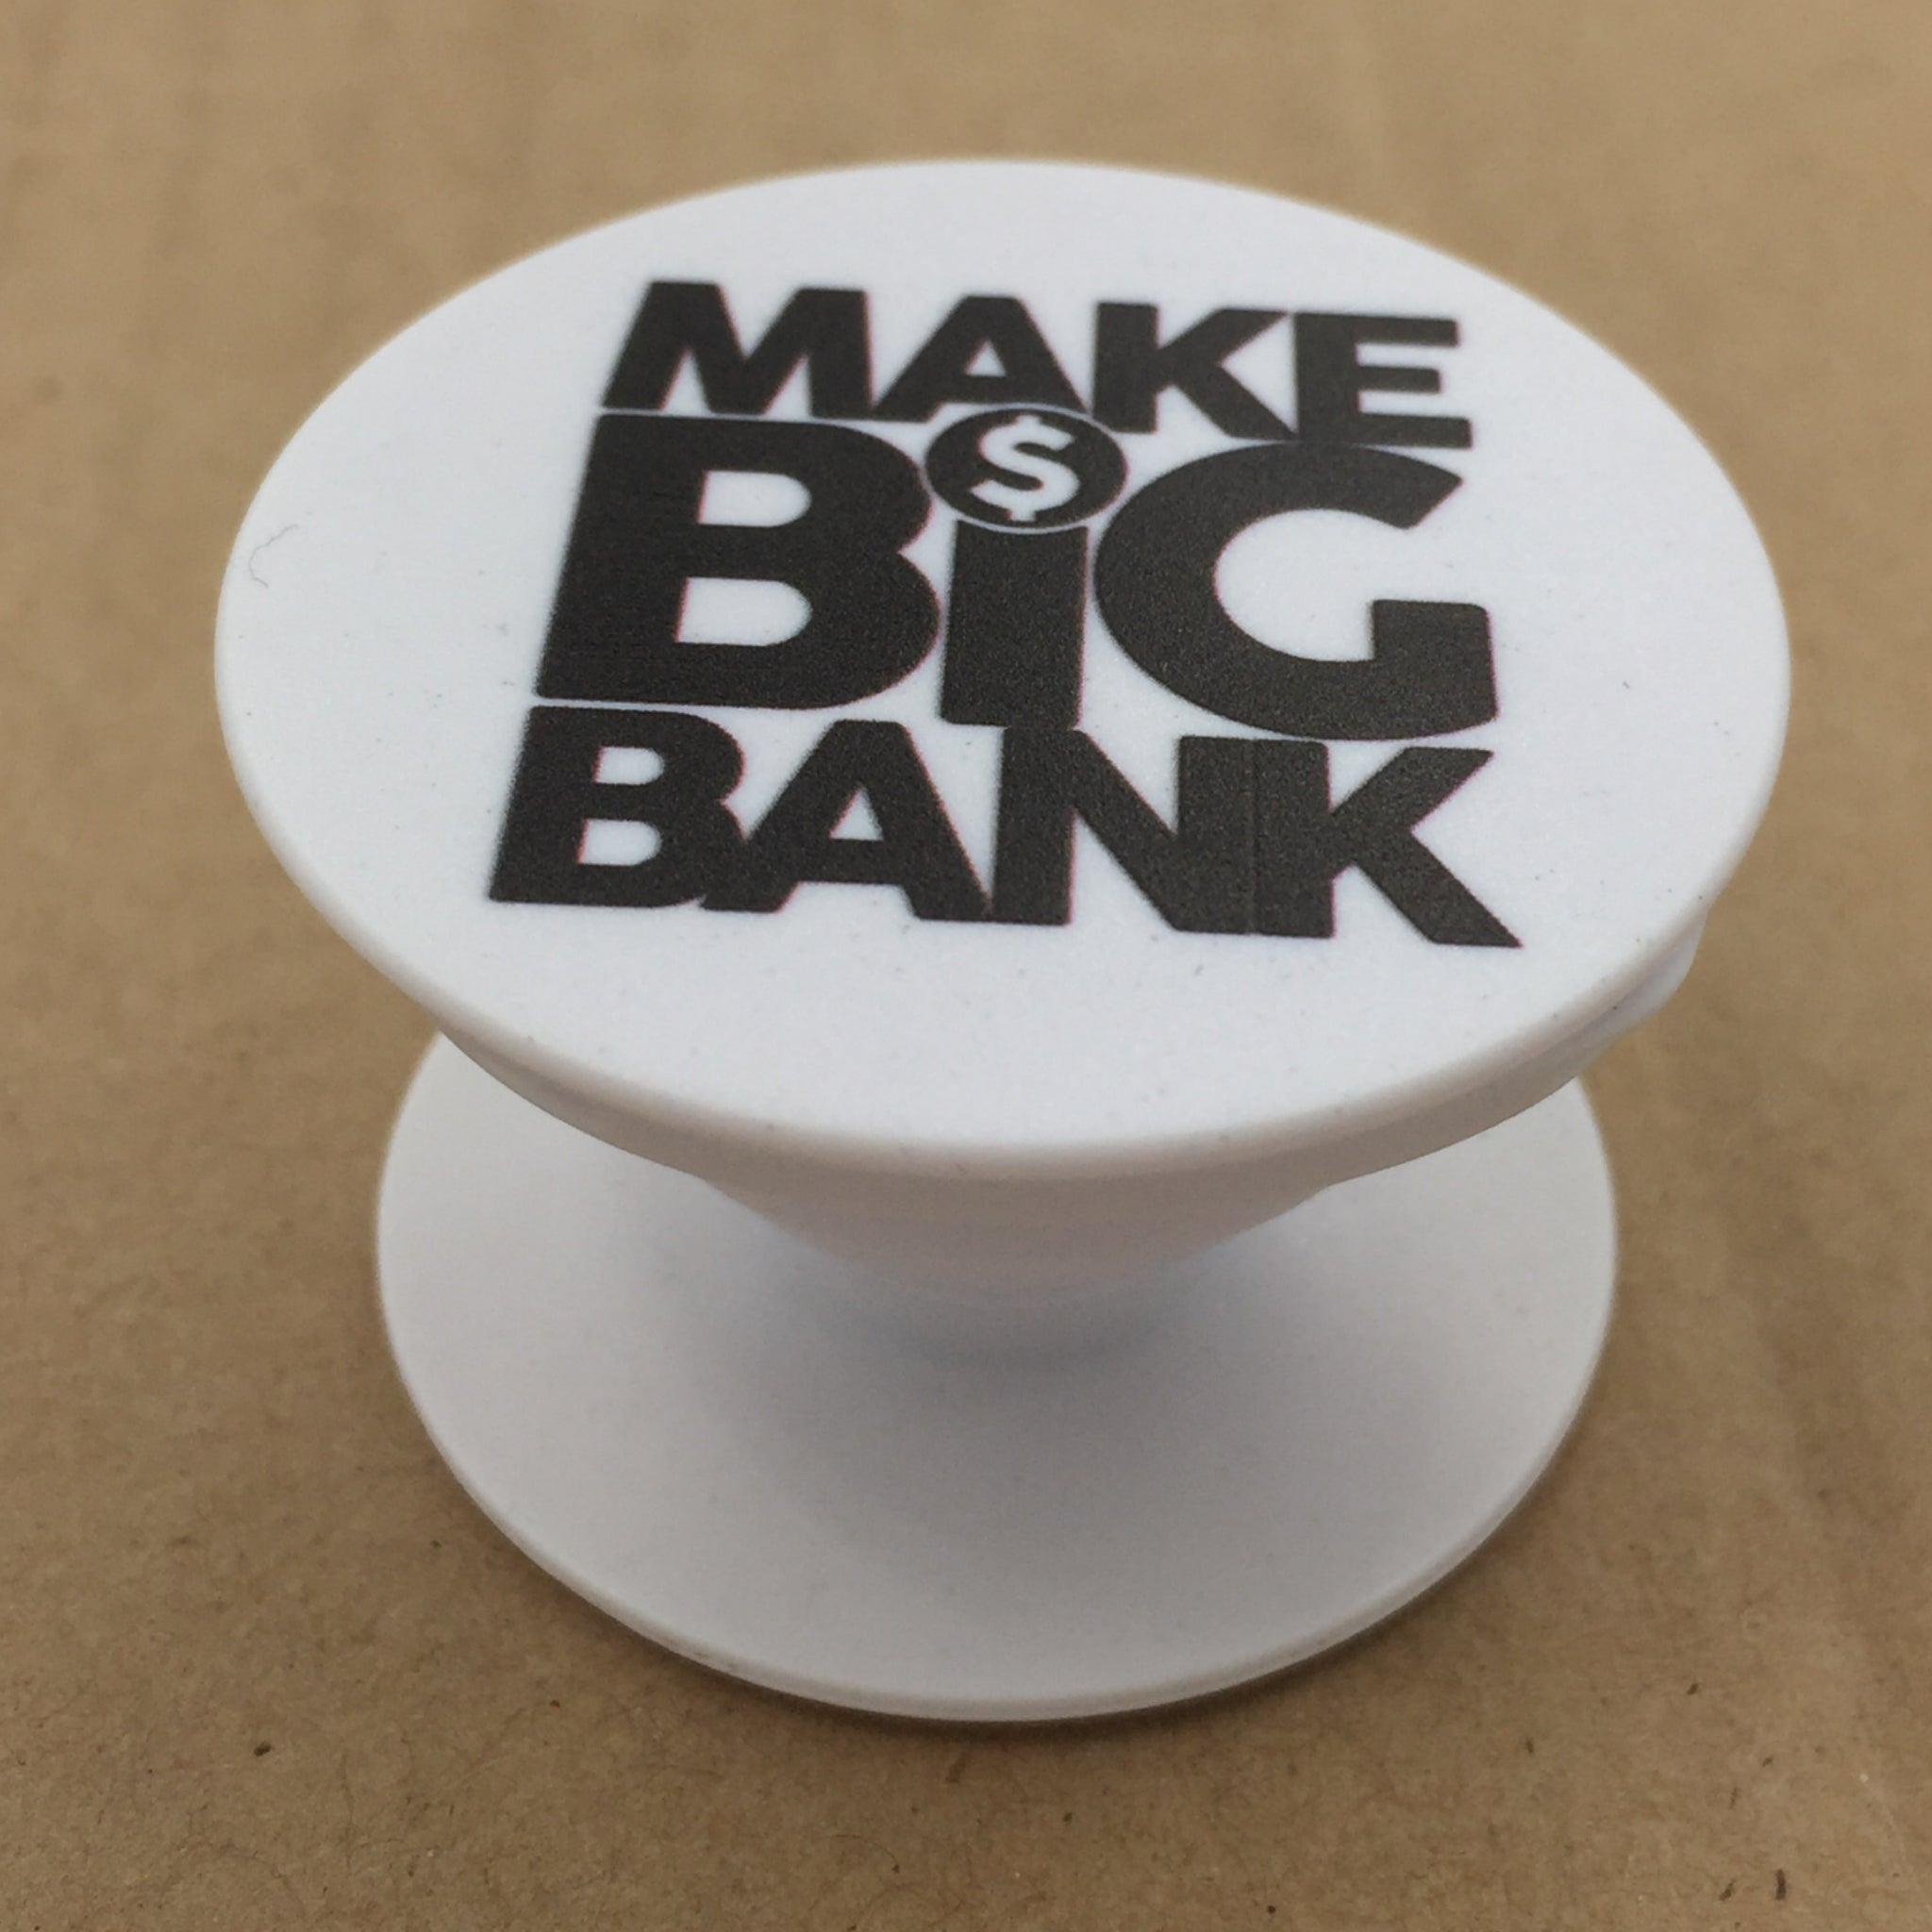 MakeBigBank Pop Socket - Make Big Bank